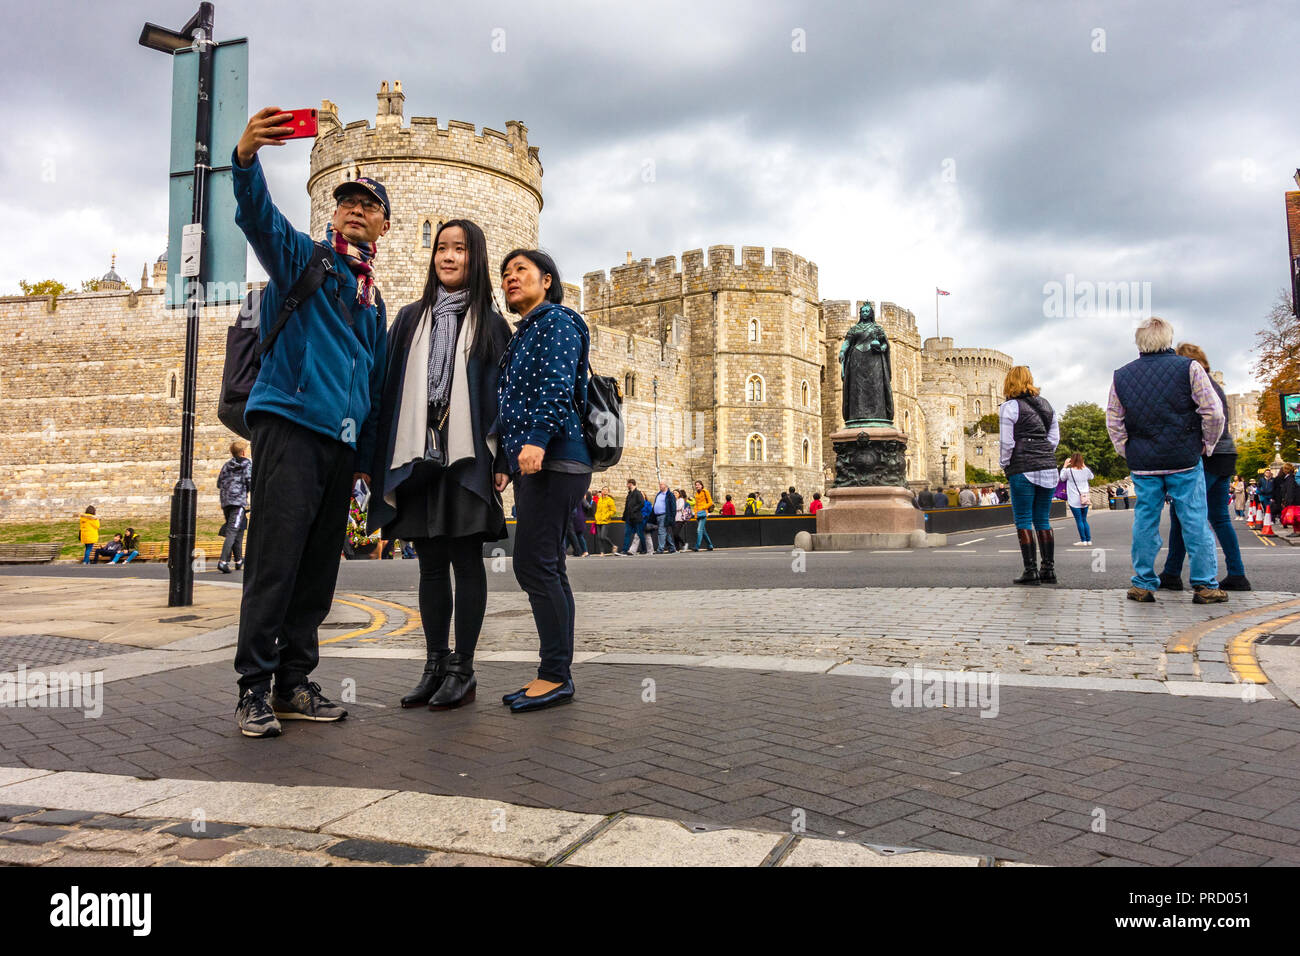 a-tourist-asian-family-pose-for-a-selfie-taken-with-a-mobile-phone-in-front-of-windsor-castle-in-windsor-uk-PRD051.jpg